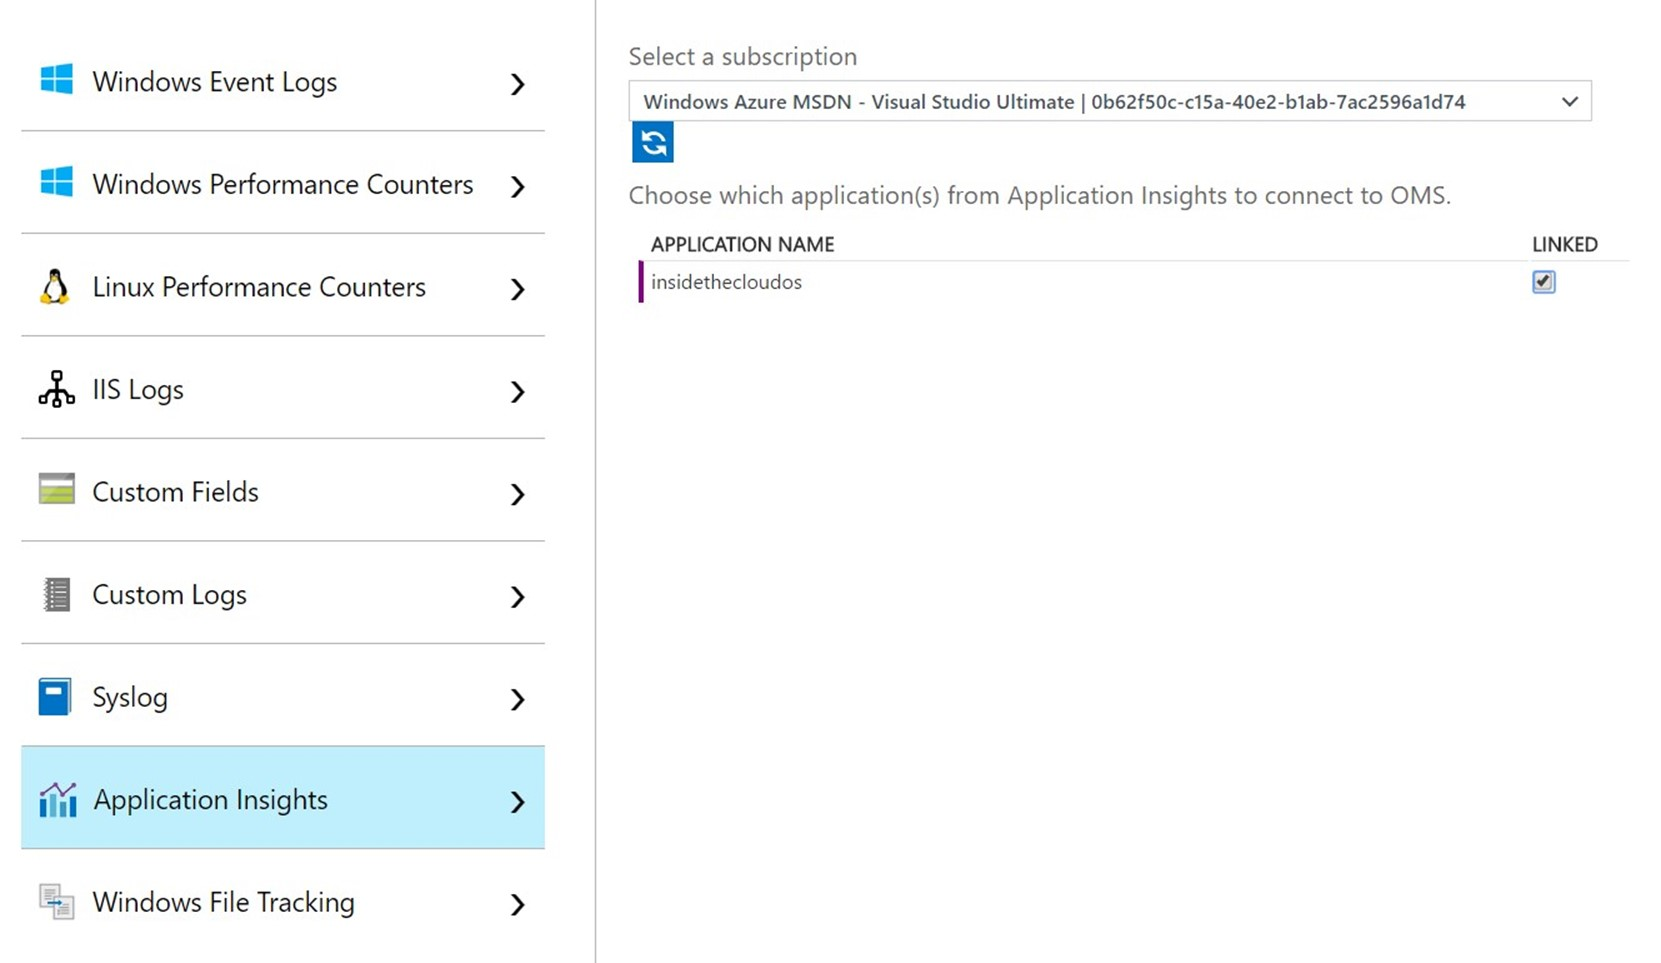 Operations Management Suite (OMS): Azure & Office 365 Solutions